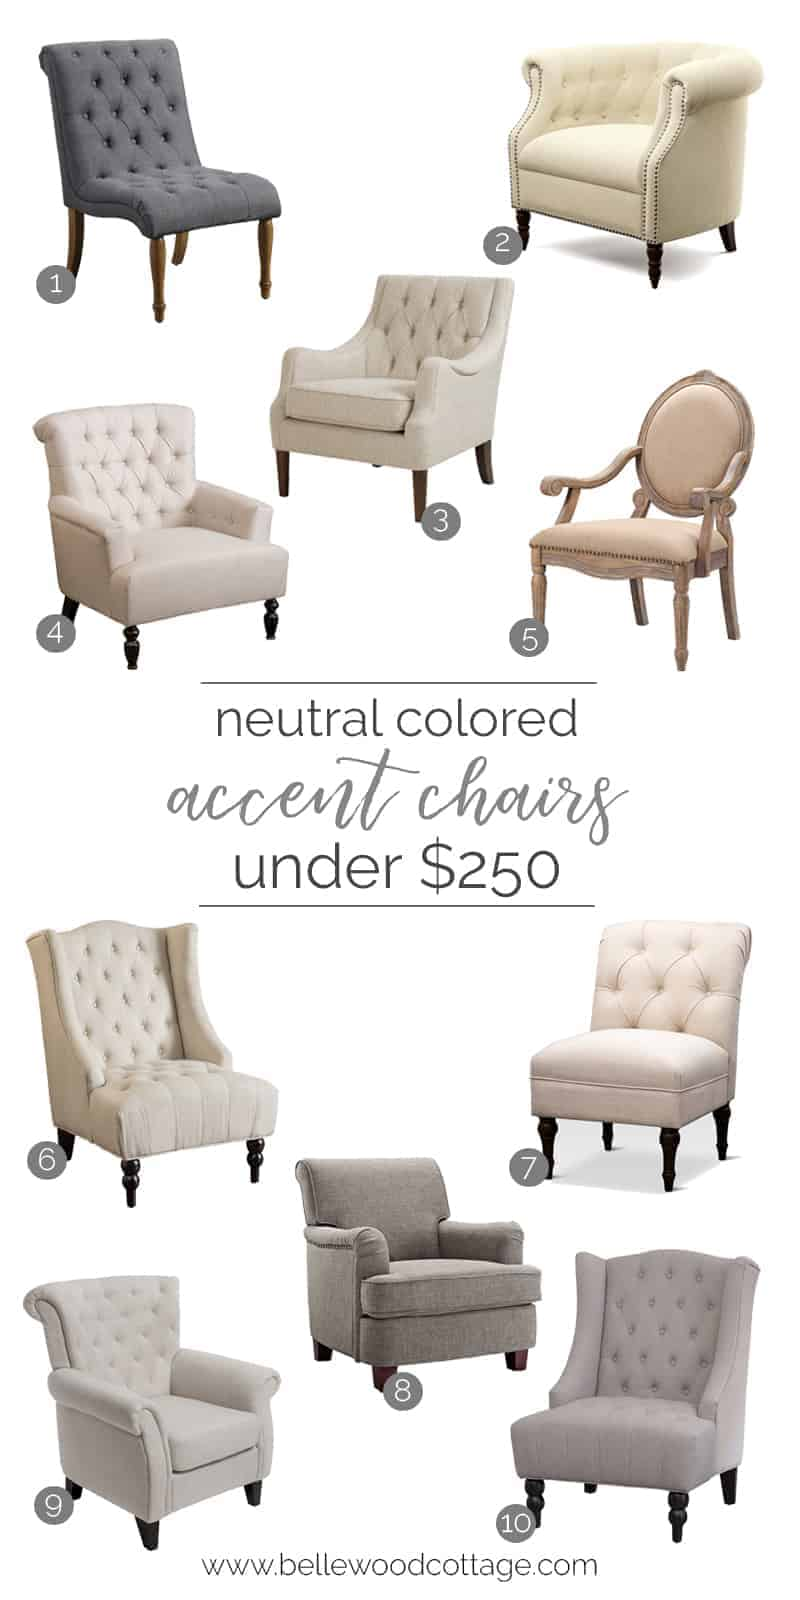 Neutral Accent Chairs Under $250